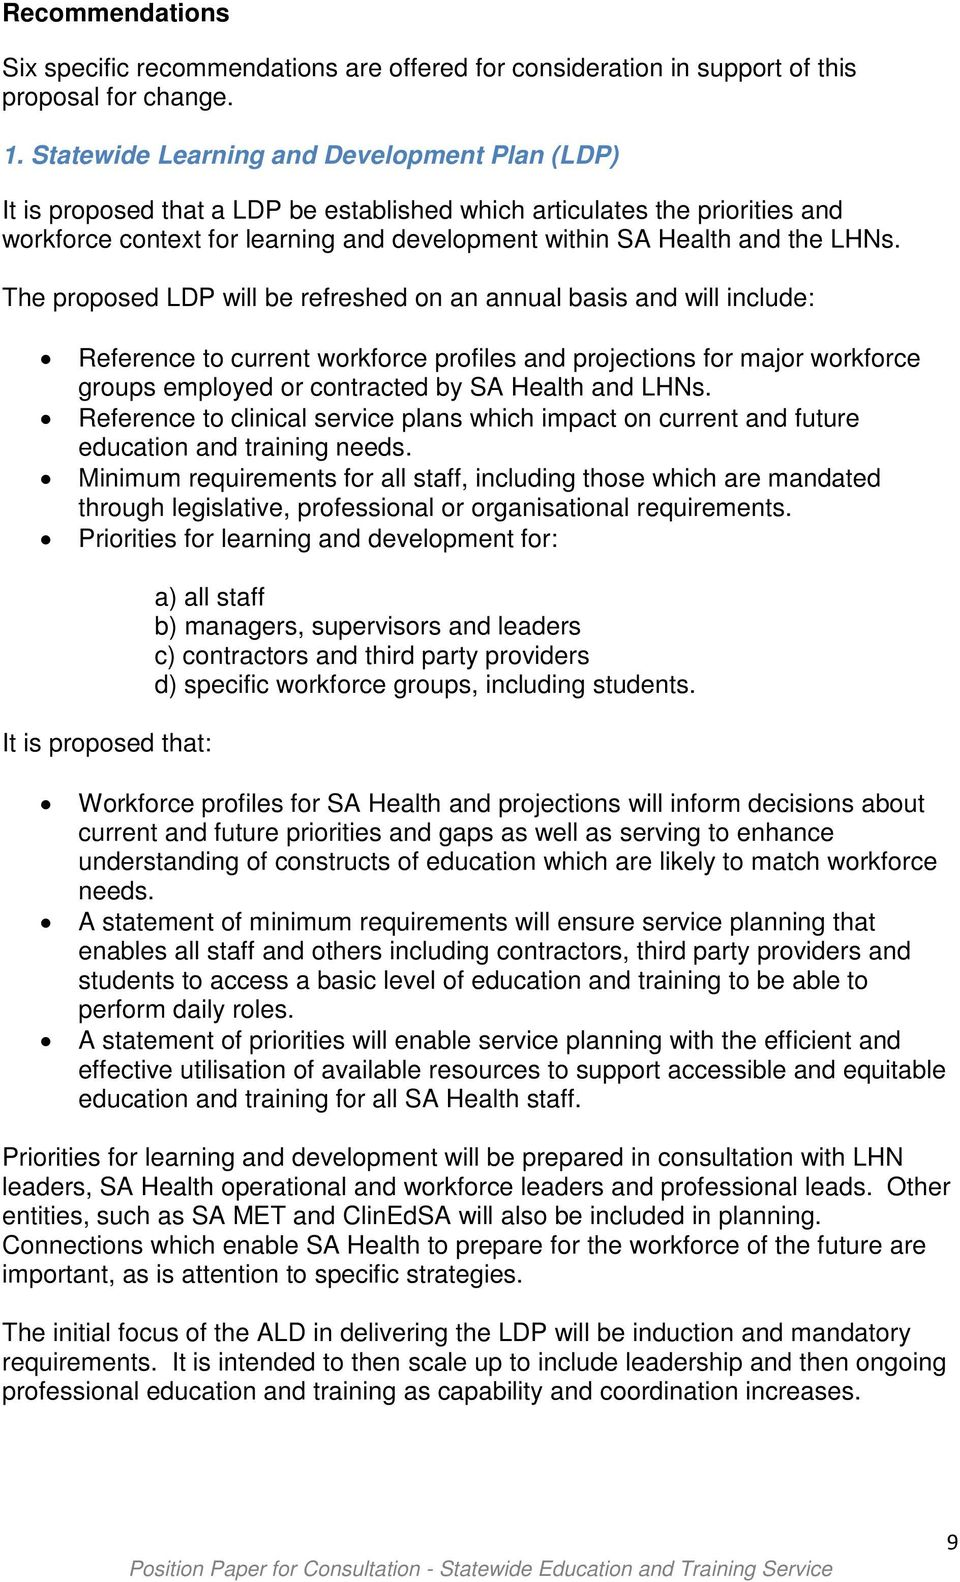 LHNs. The proposed LDP will be refreshed on an annual basis and will include: Reference to current workforce profiles and projections for major workforce groups employed or contracted by SA Health